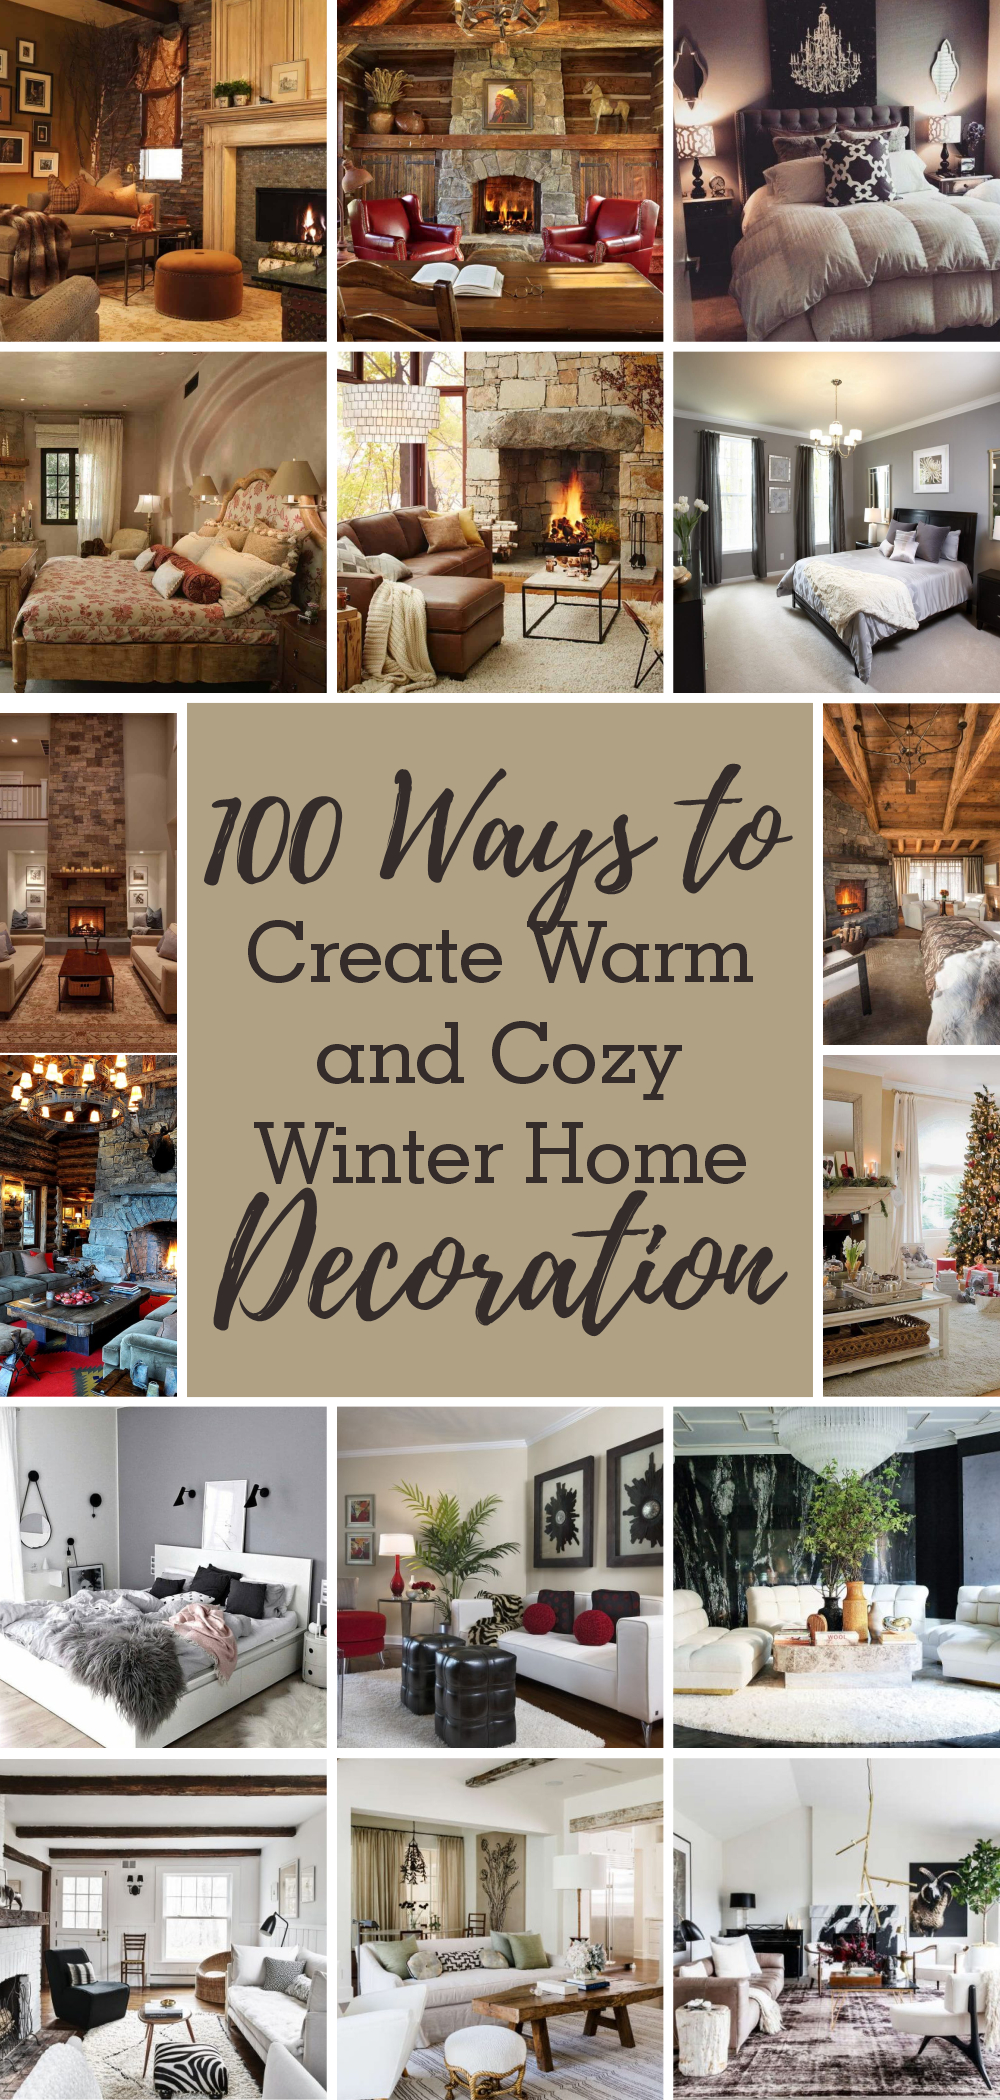 100 ways to create warm and cozy winter home decoration 1